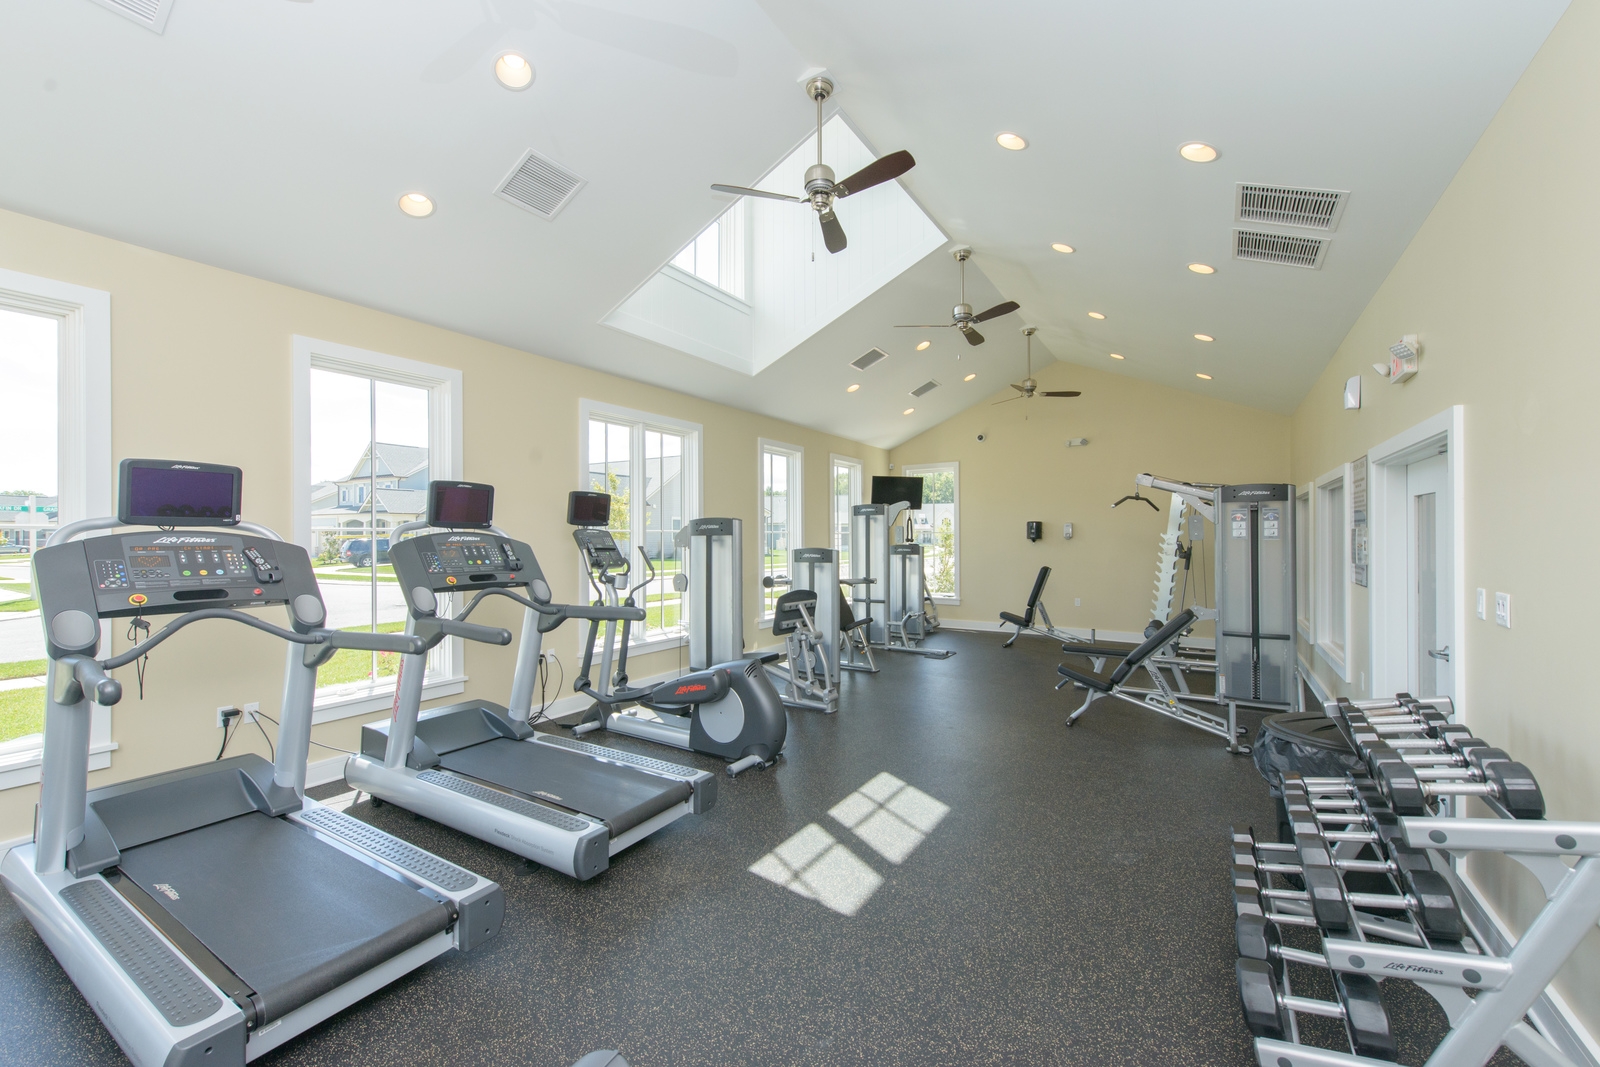 Don't worry about a membership - you've got a gym conveniently located in the community clubhouse!